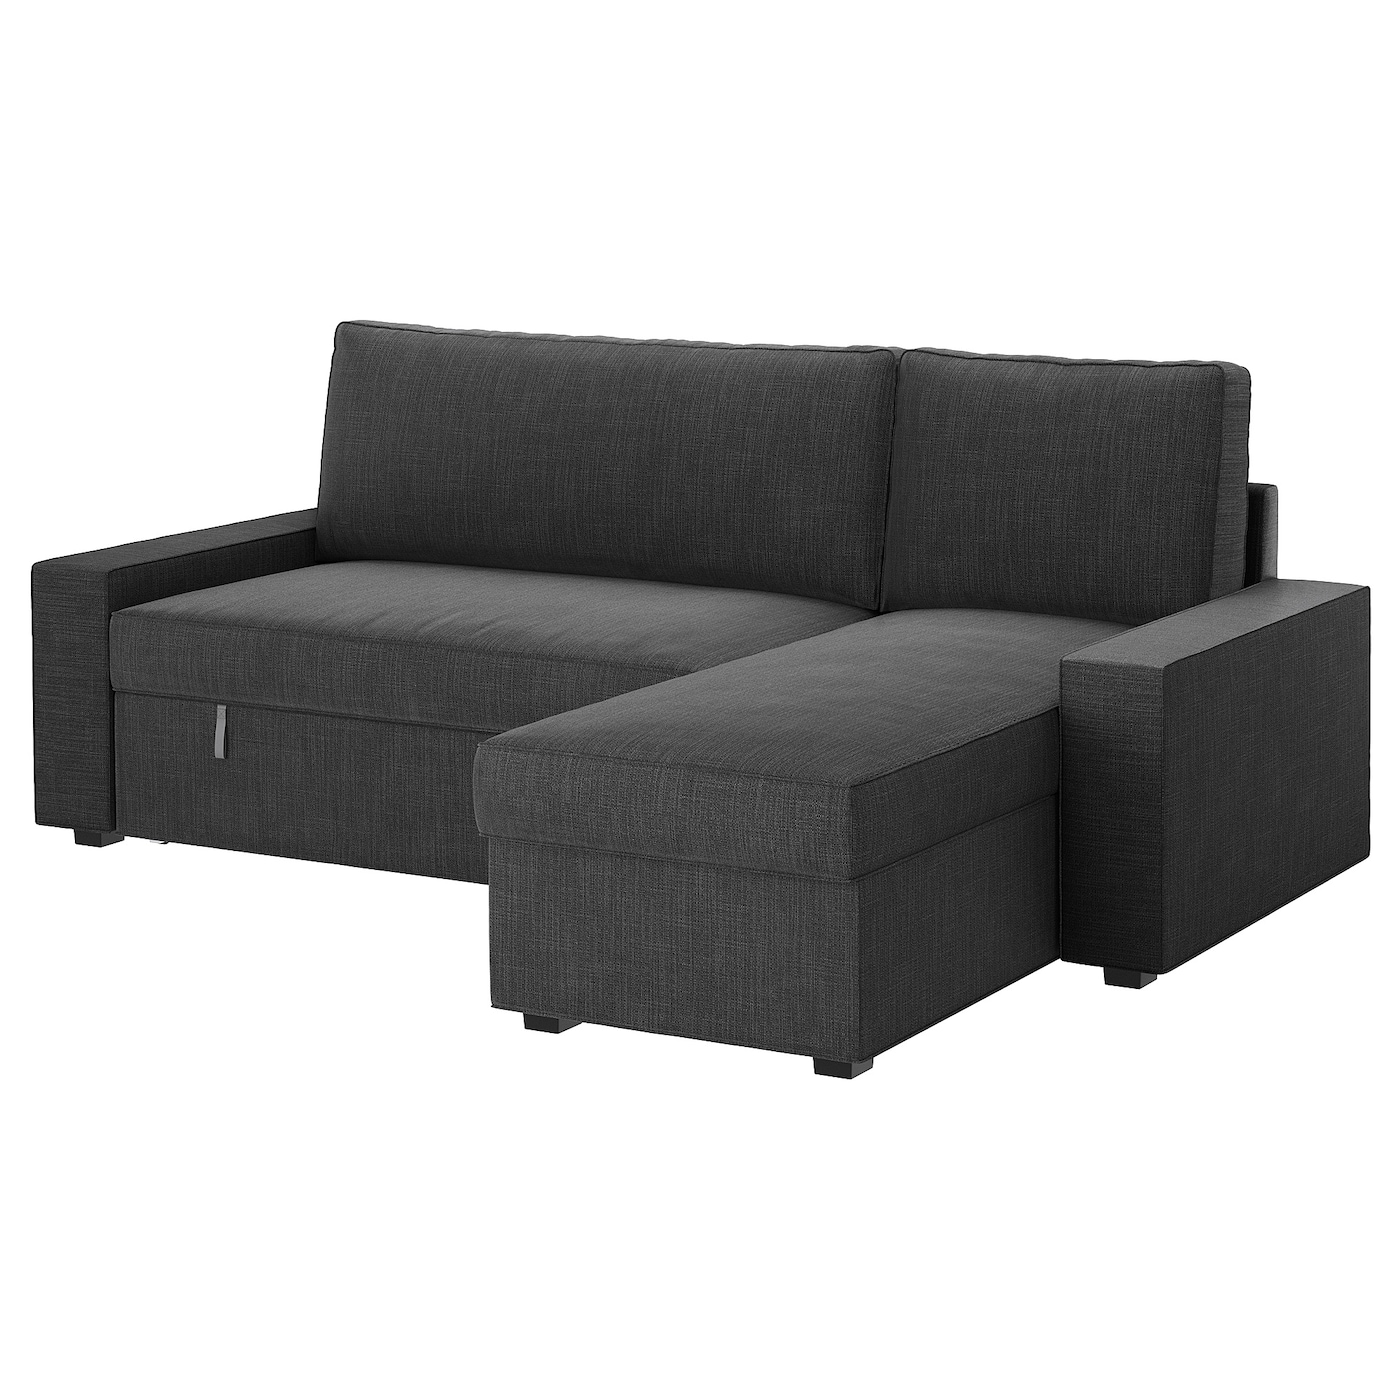 Vilasund sofa bed with chaise longue hillared anthracite for Ikea schlafsofa